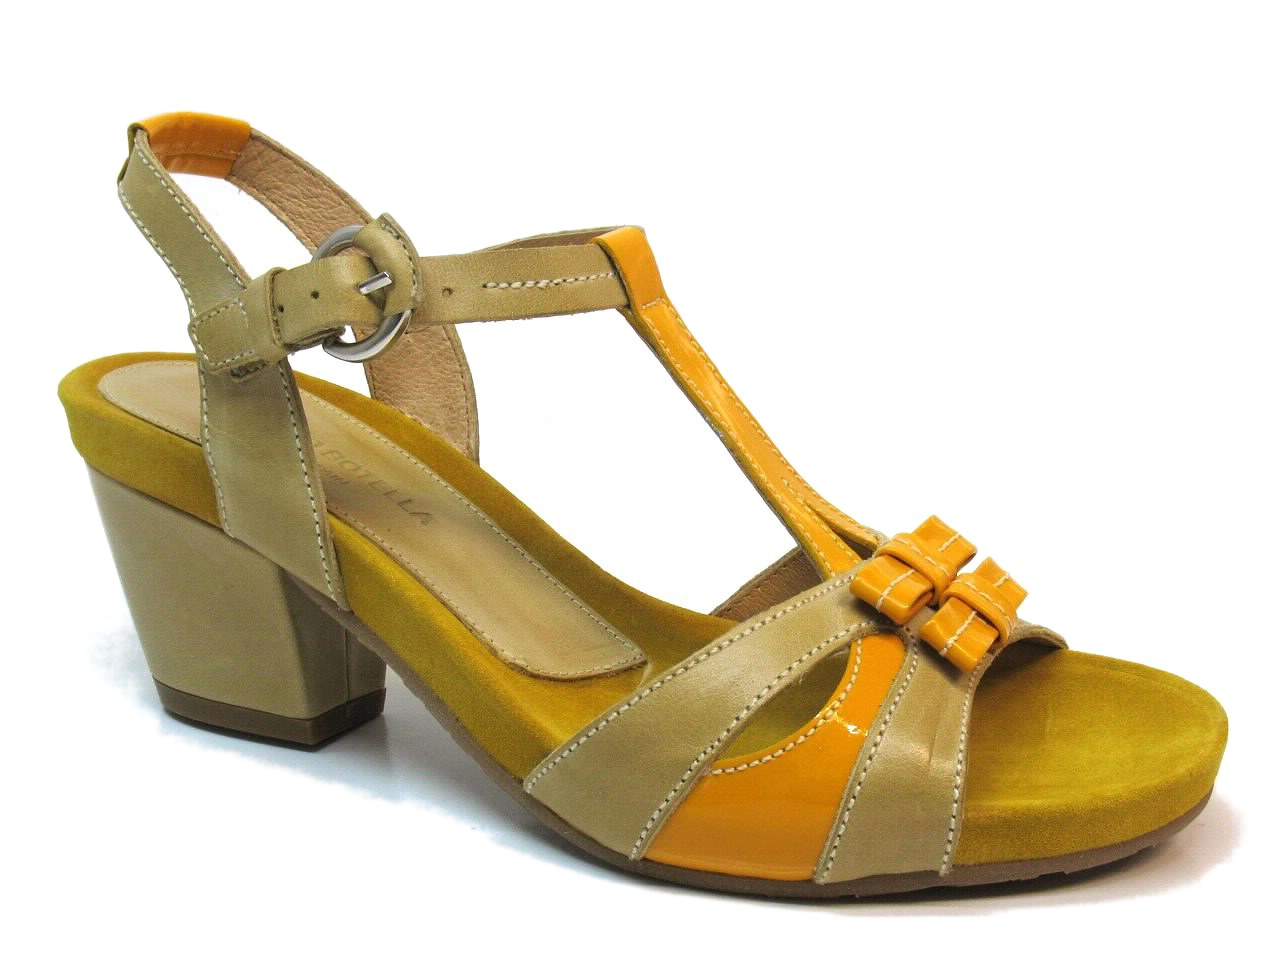 Heel Sandals Roberto Botella - 387 M13246